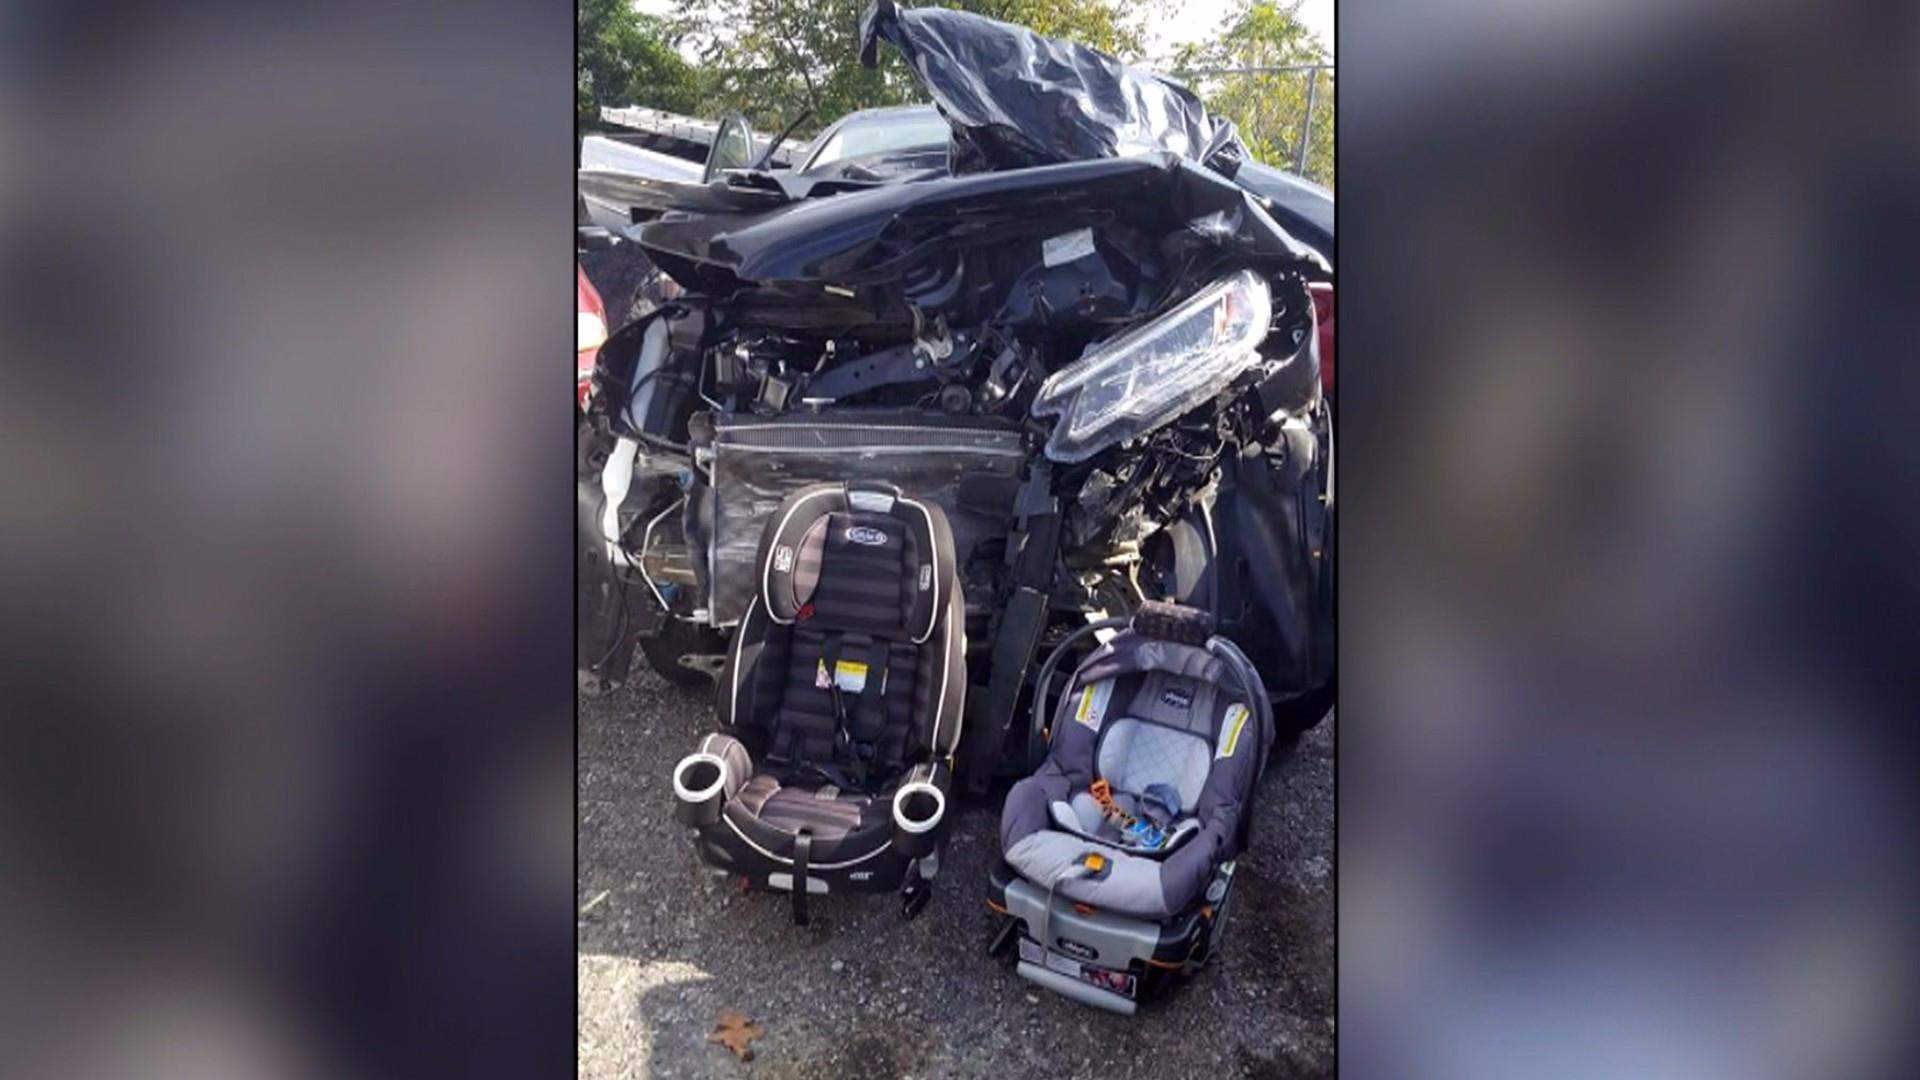 Mom texts about baby s car seat safety before car accident